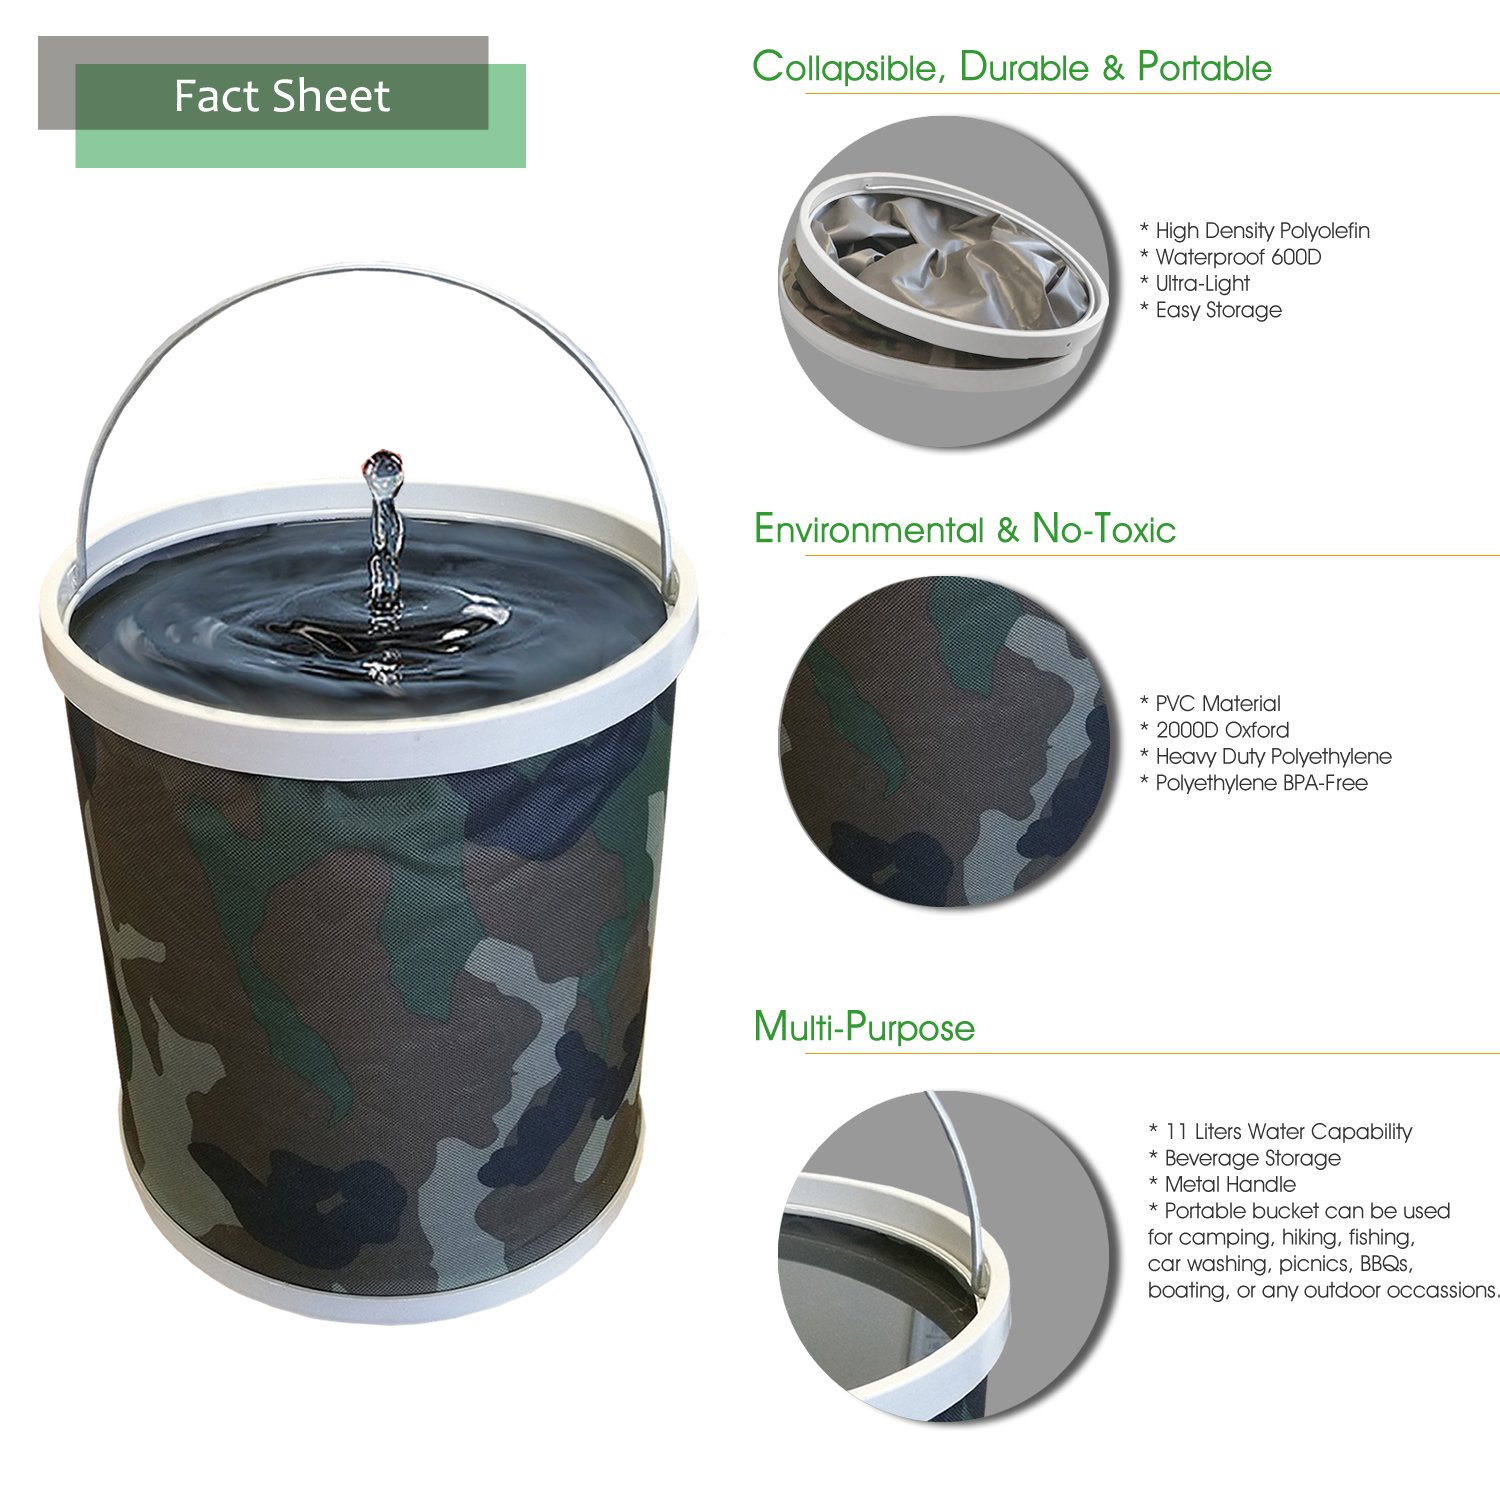 Compact Collapsible Water Bucket by InSassy – Perfect for Camping, Gardening and Outdoors – Durable, Lightweight and Portable Folding Wash Basin Storage Fishing Beach Container – Camo Color by InSassy (Image #4)